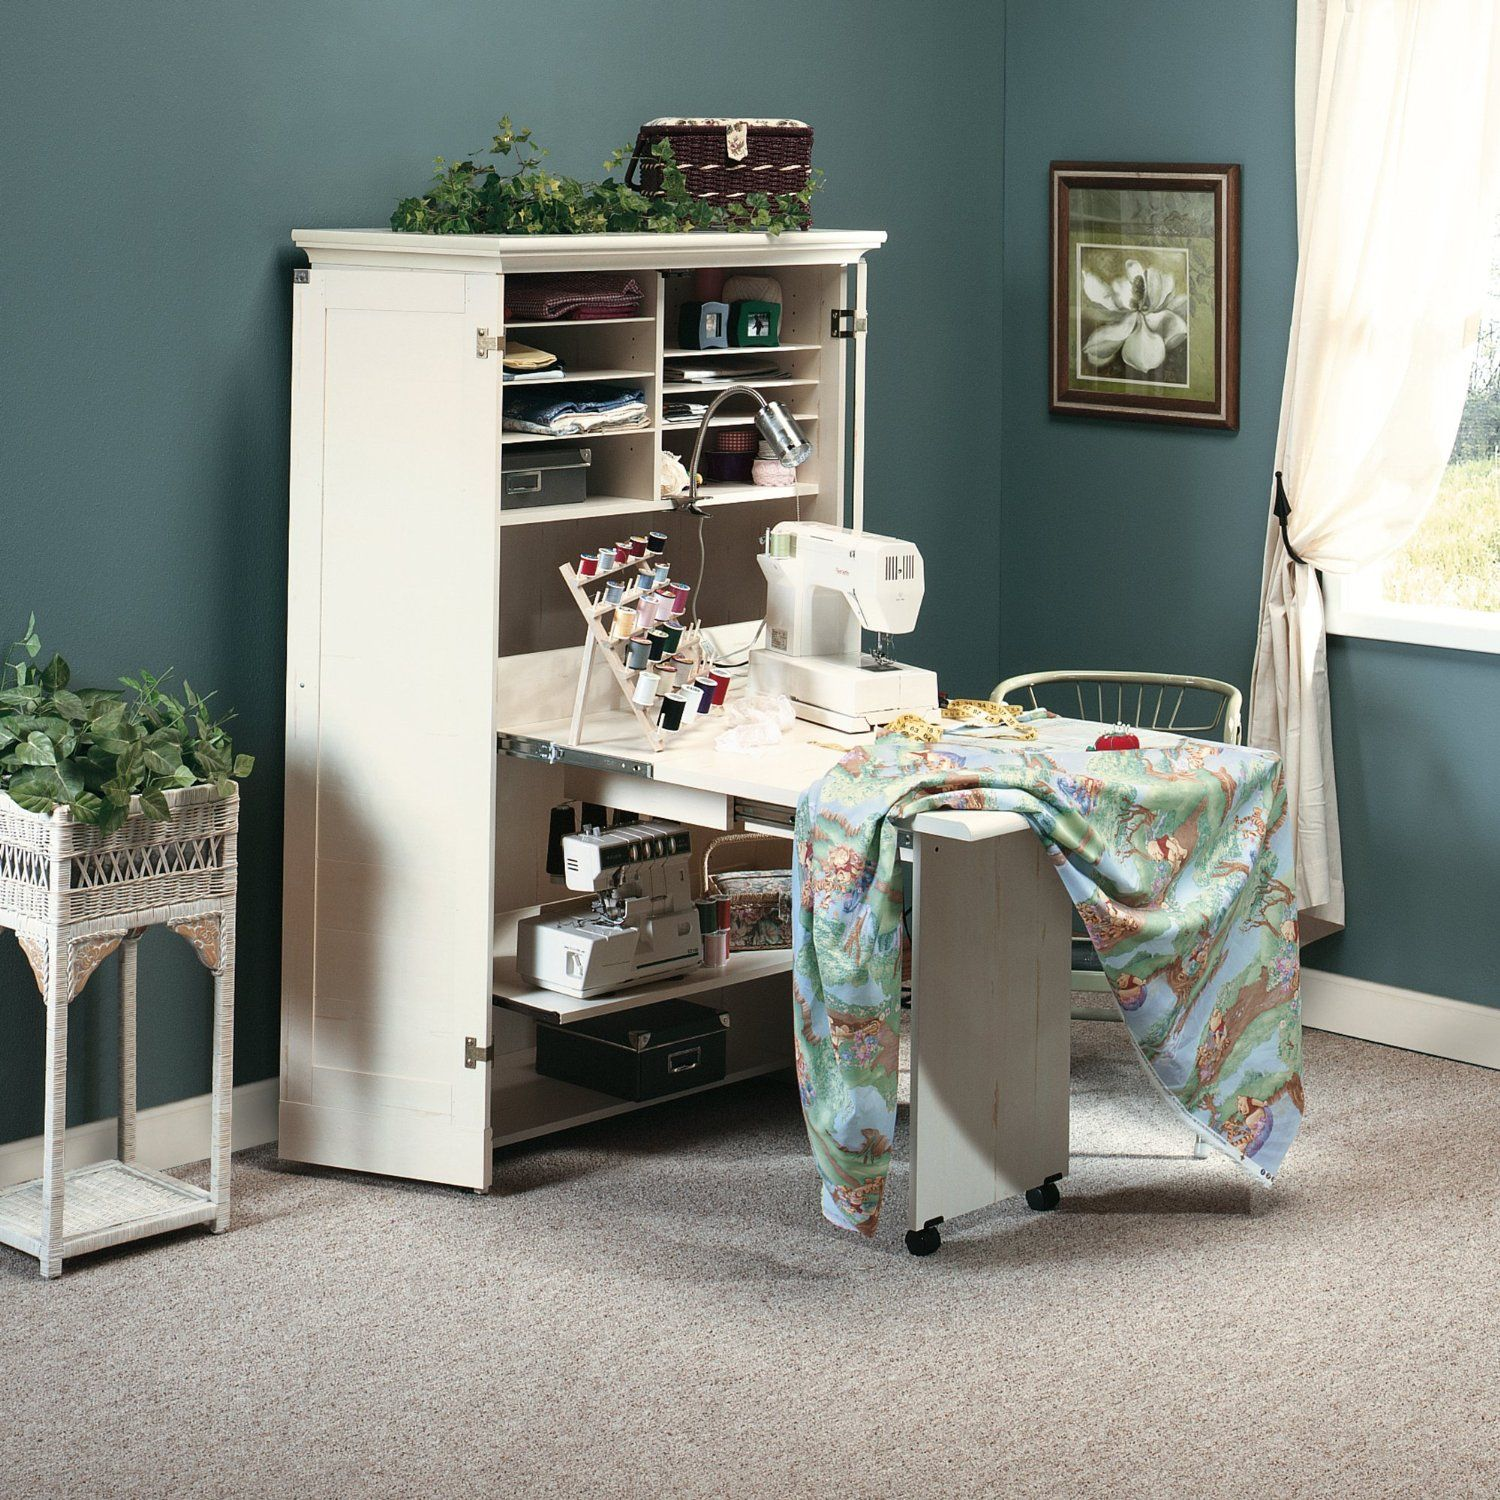 If Sewing Is You Pion There No Better Choice Than This Machine Cabinet